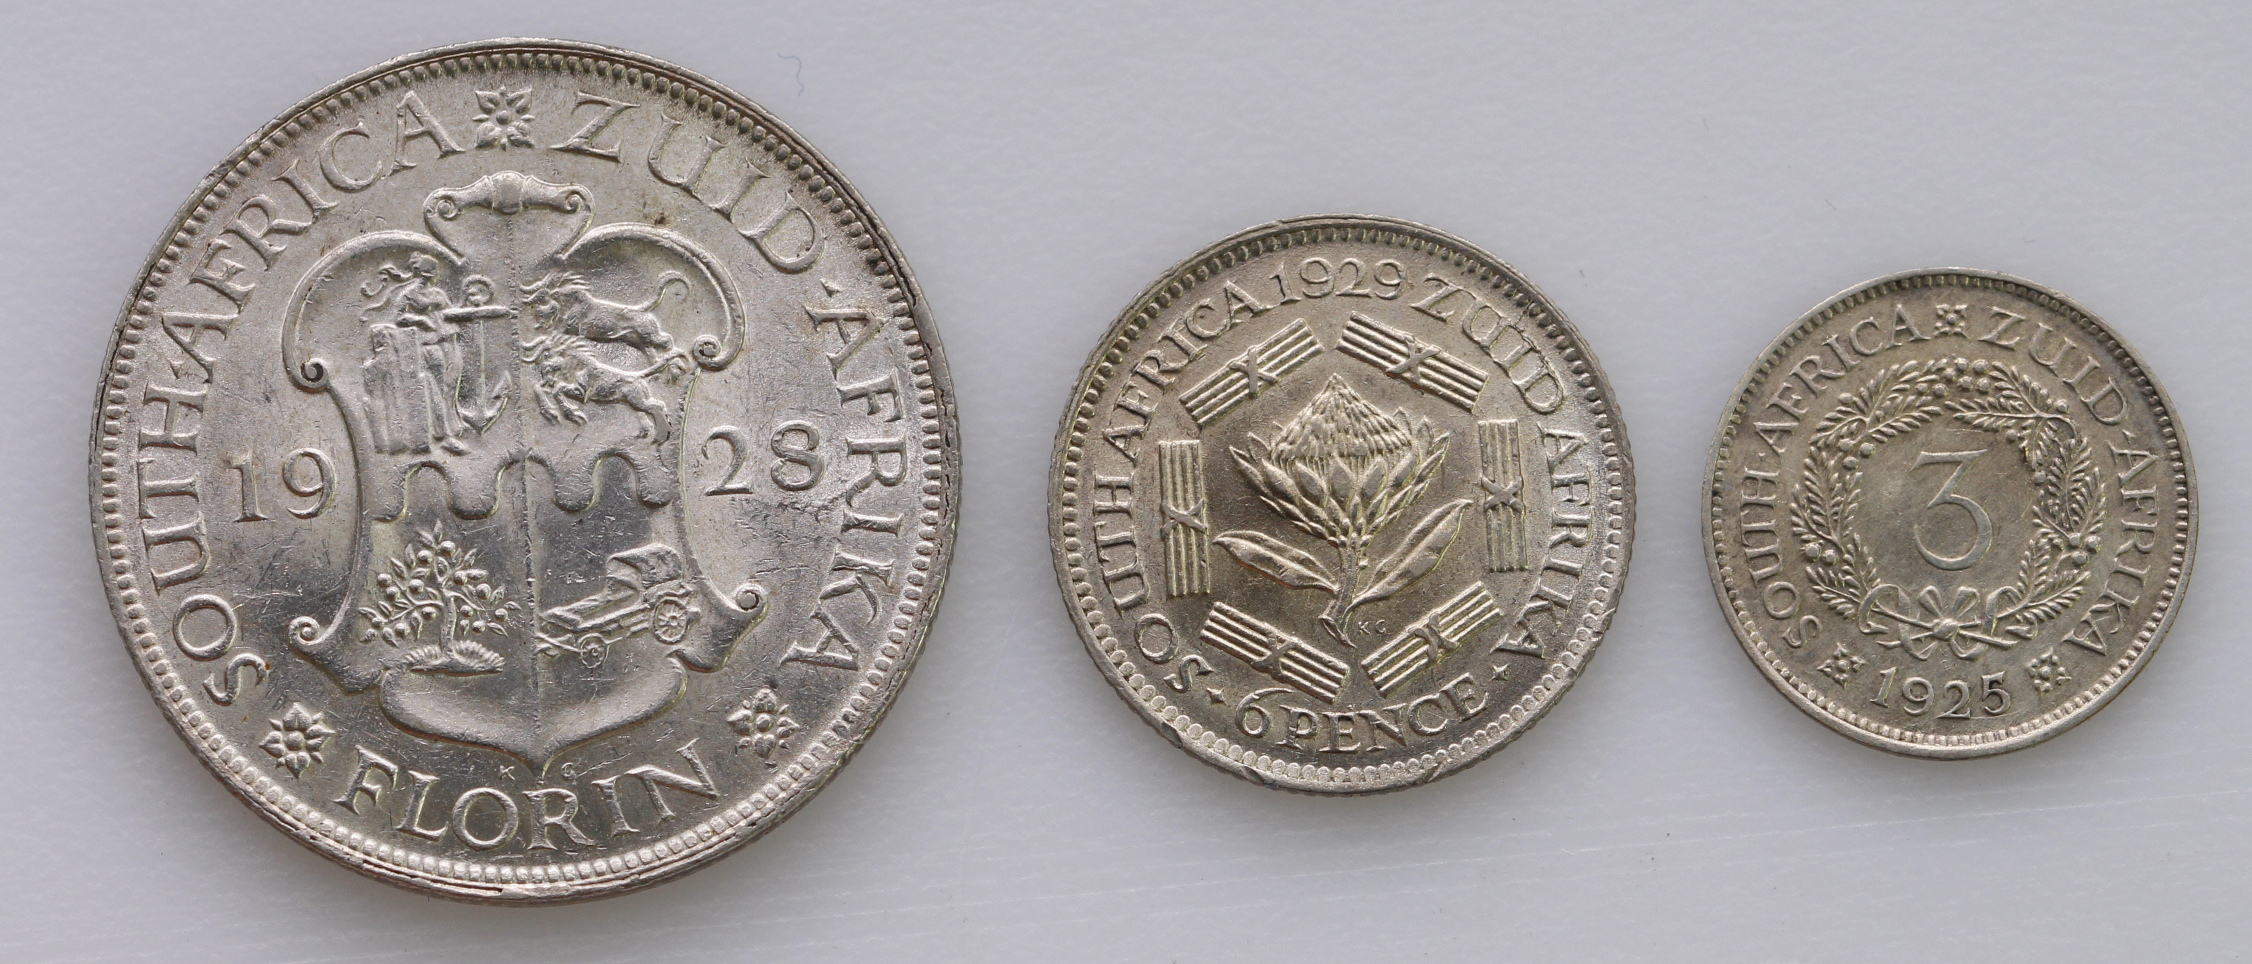 South Africa (3): Florin 1928 aEF, Sixpence 1929 EF, and Threepence 1925 wreath type VF, light - Image 2 of 2